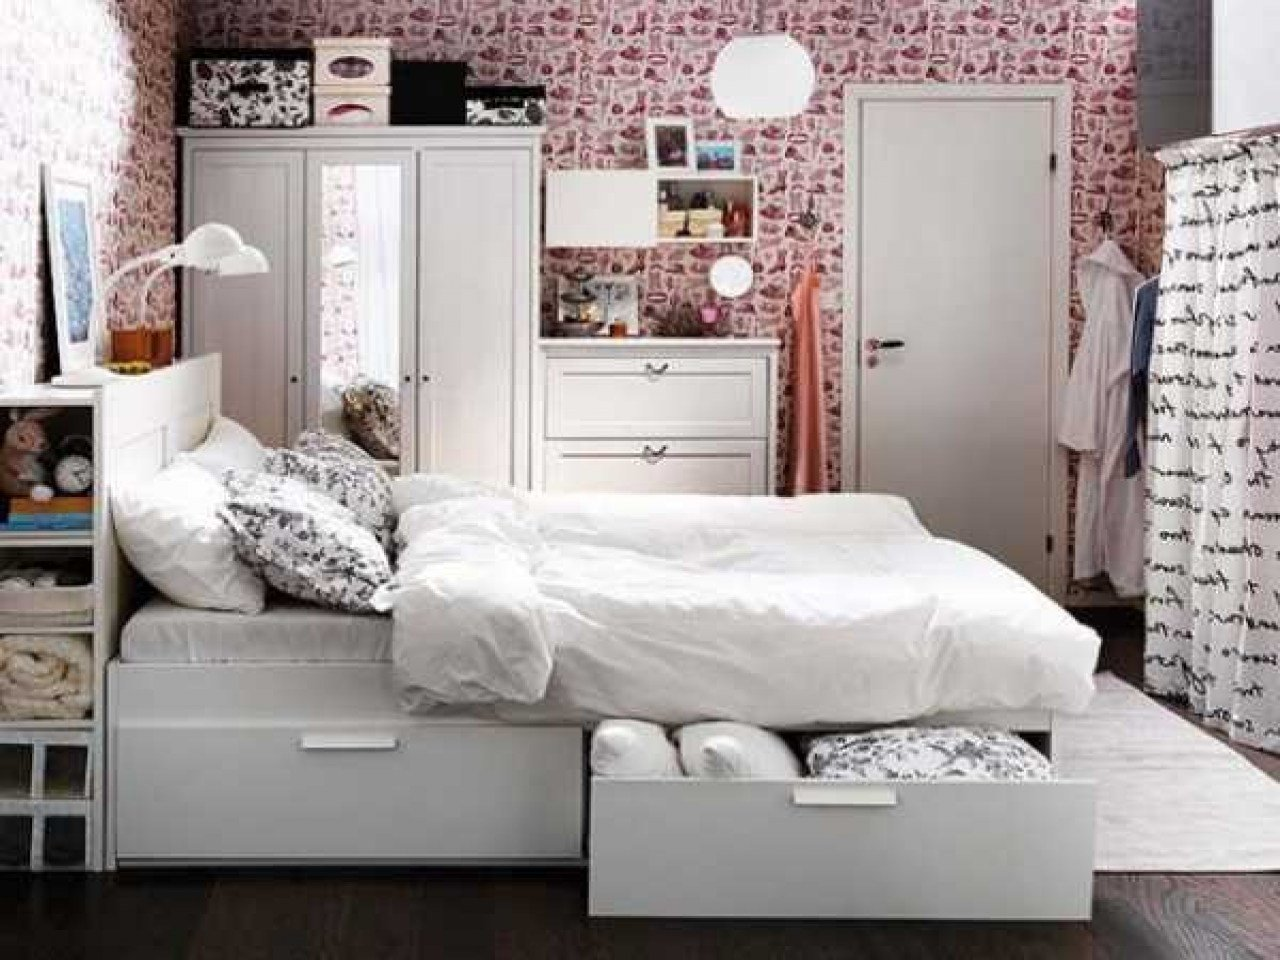 Best Bedroom Storage Ideas For Small Spaces Space Saving Bedroom Ideas Space Saving Storage Ideas With Pictures